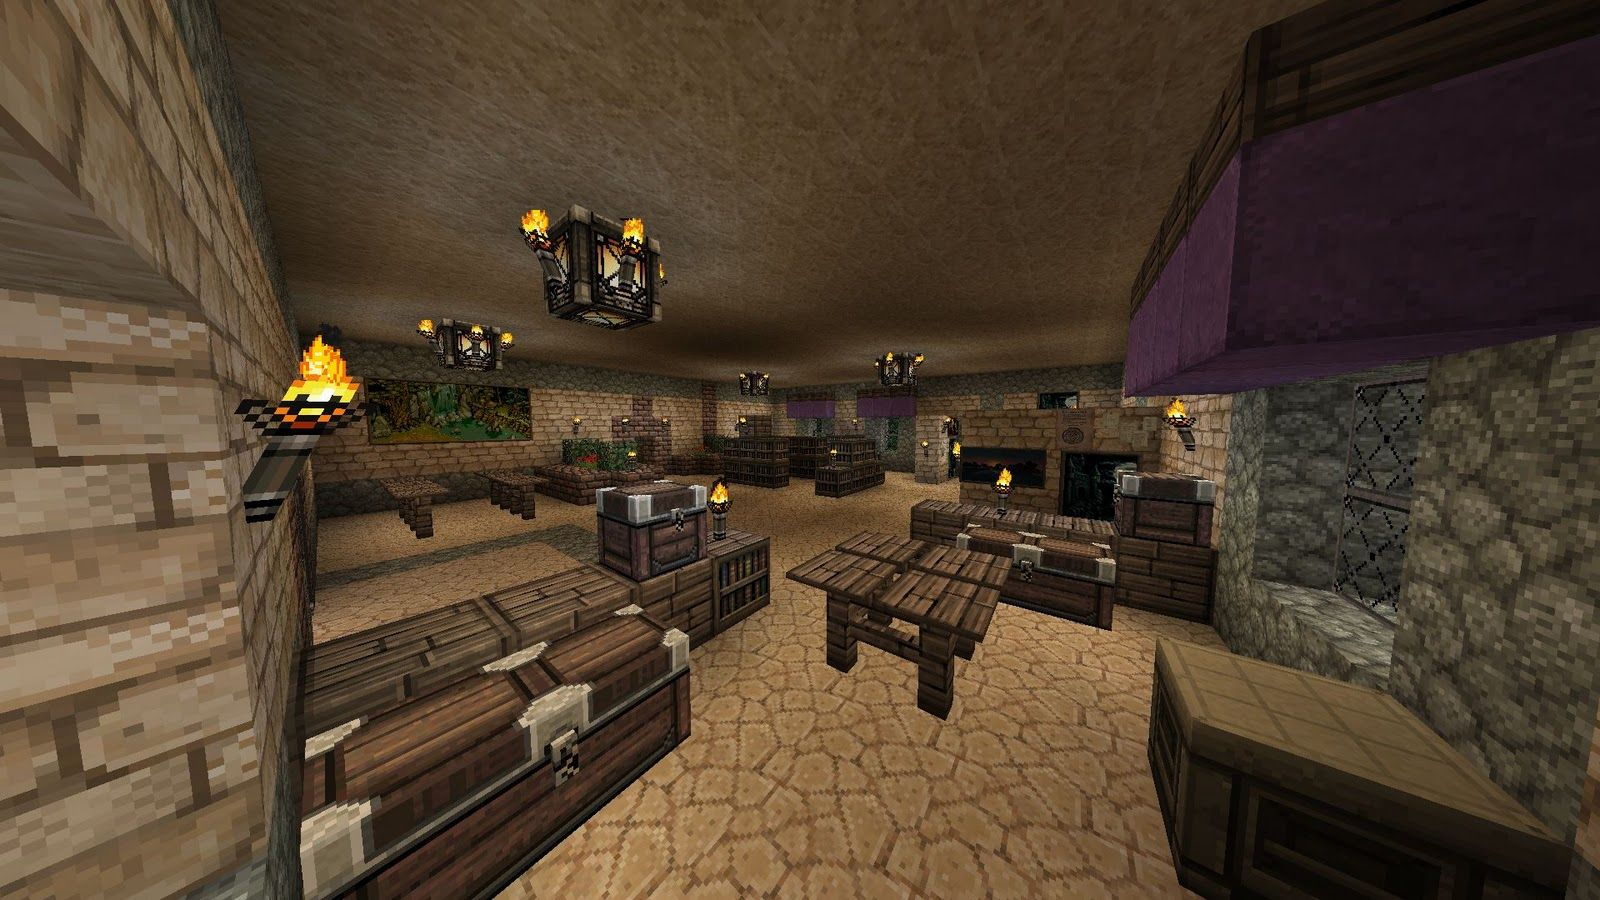 Viewing Gallery For   Minecraft Room Ideas. Viewing Gallery For   Minecraft Room Ideas   Christy Ann s room